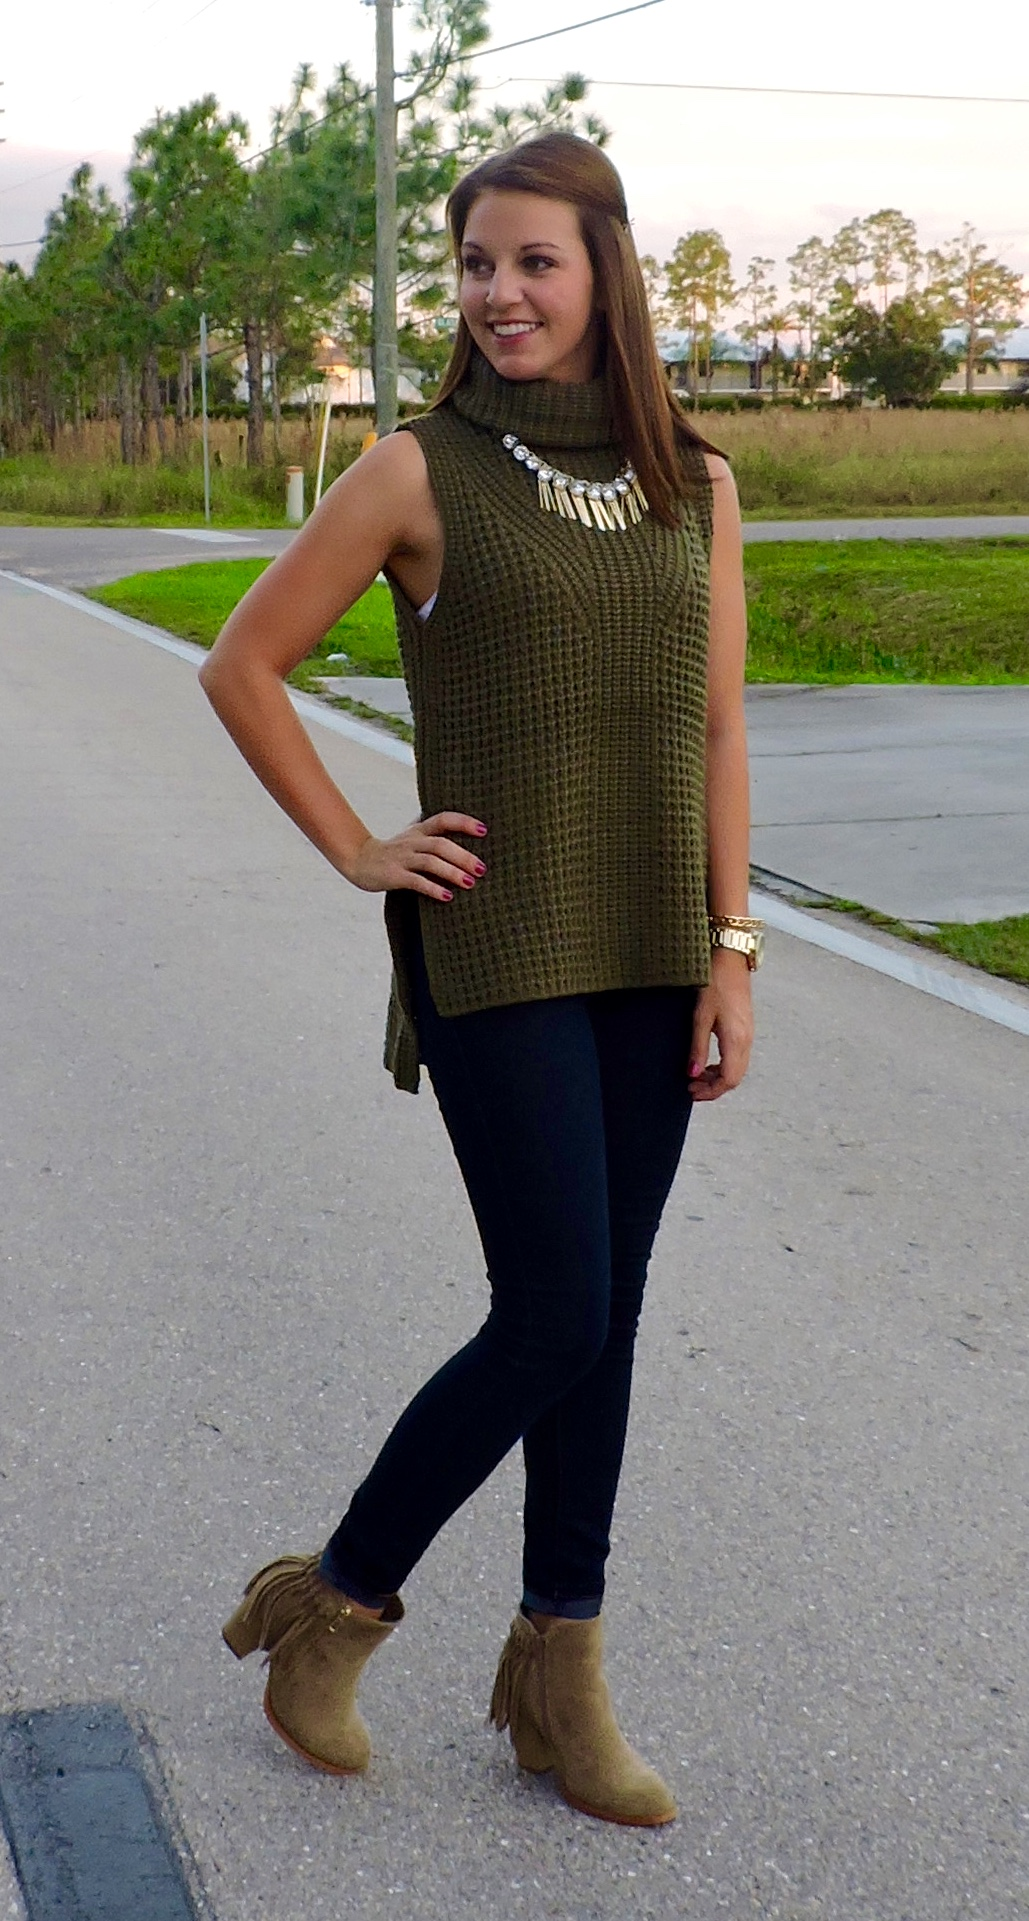 DSCN0186 - Statement Necklace With Turtleneck by Florida fashion blogger Absolutely Annie